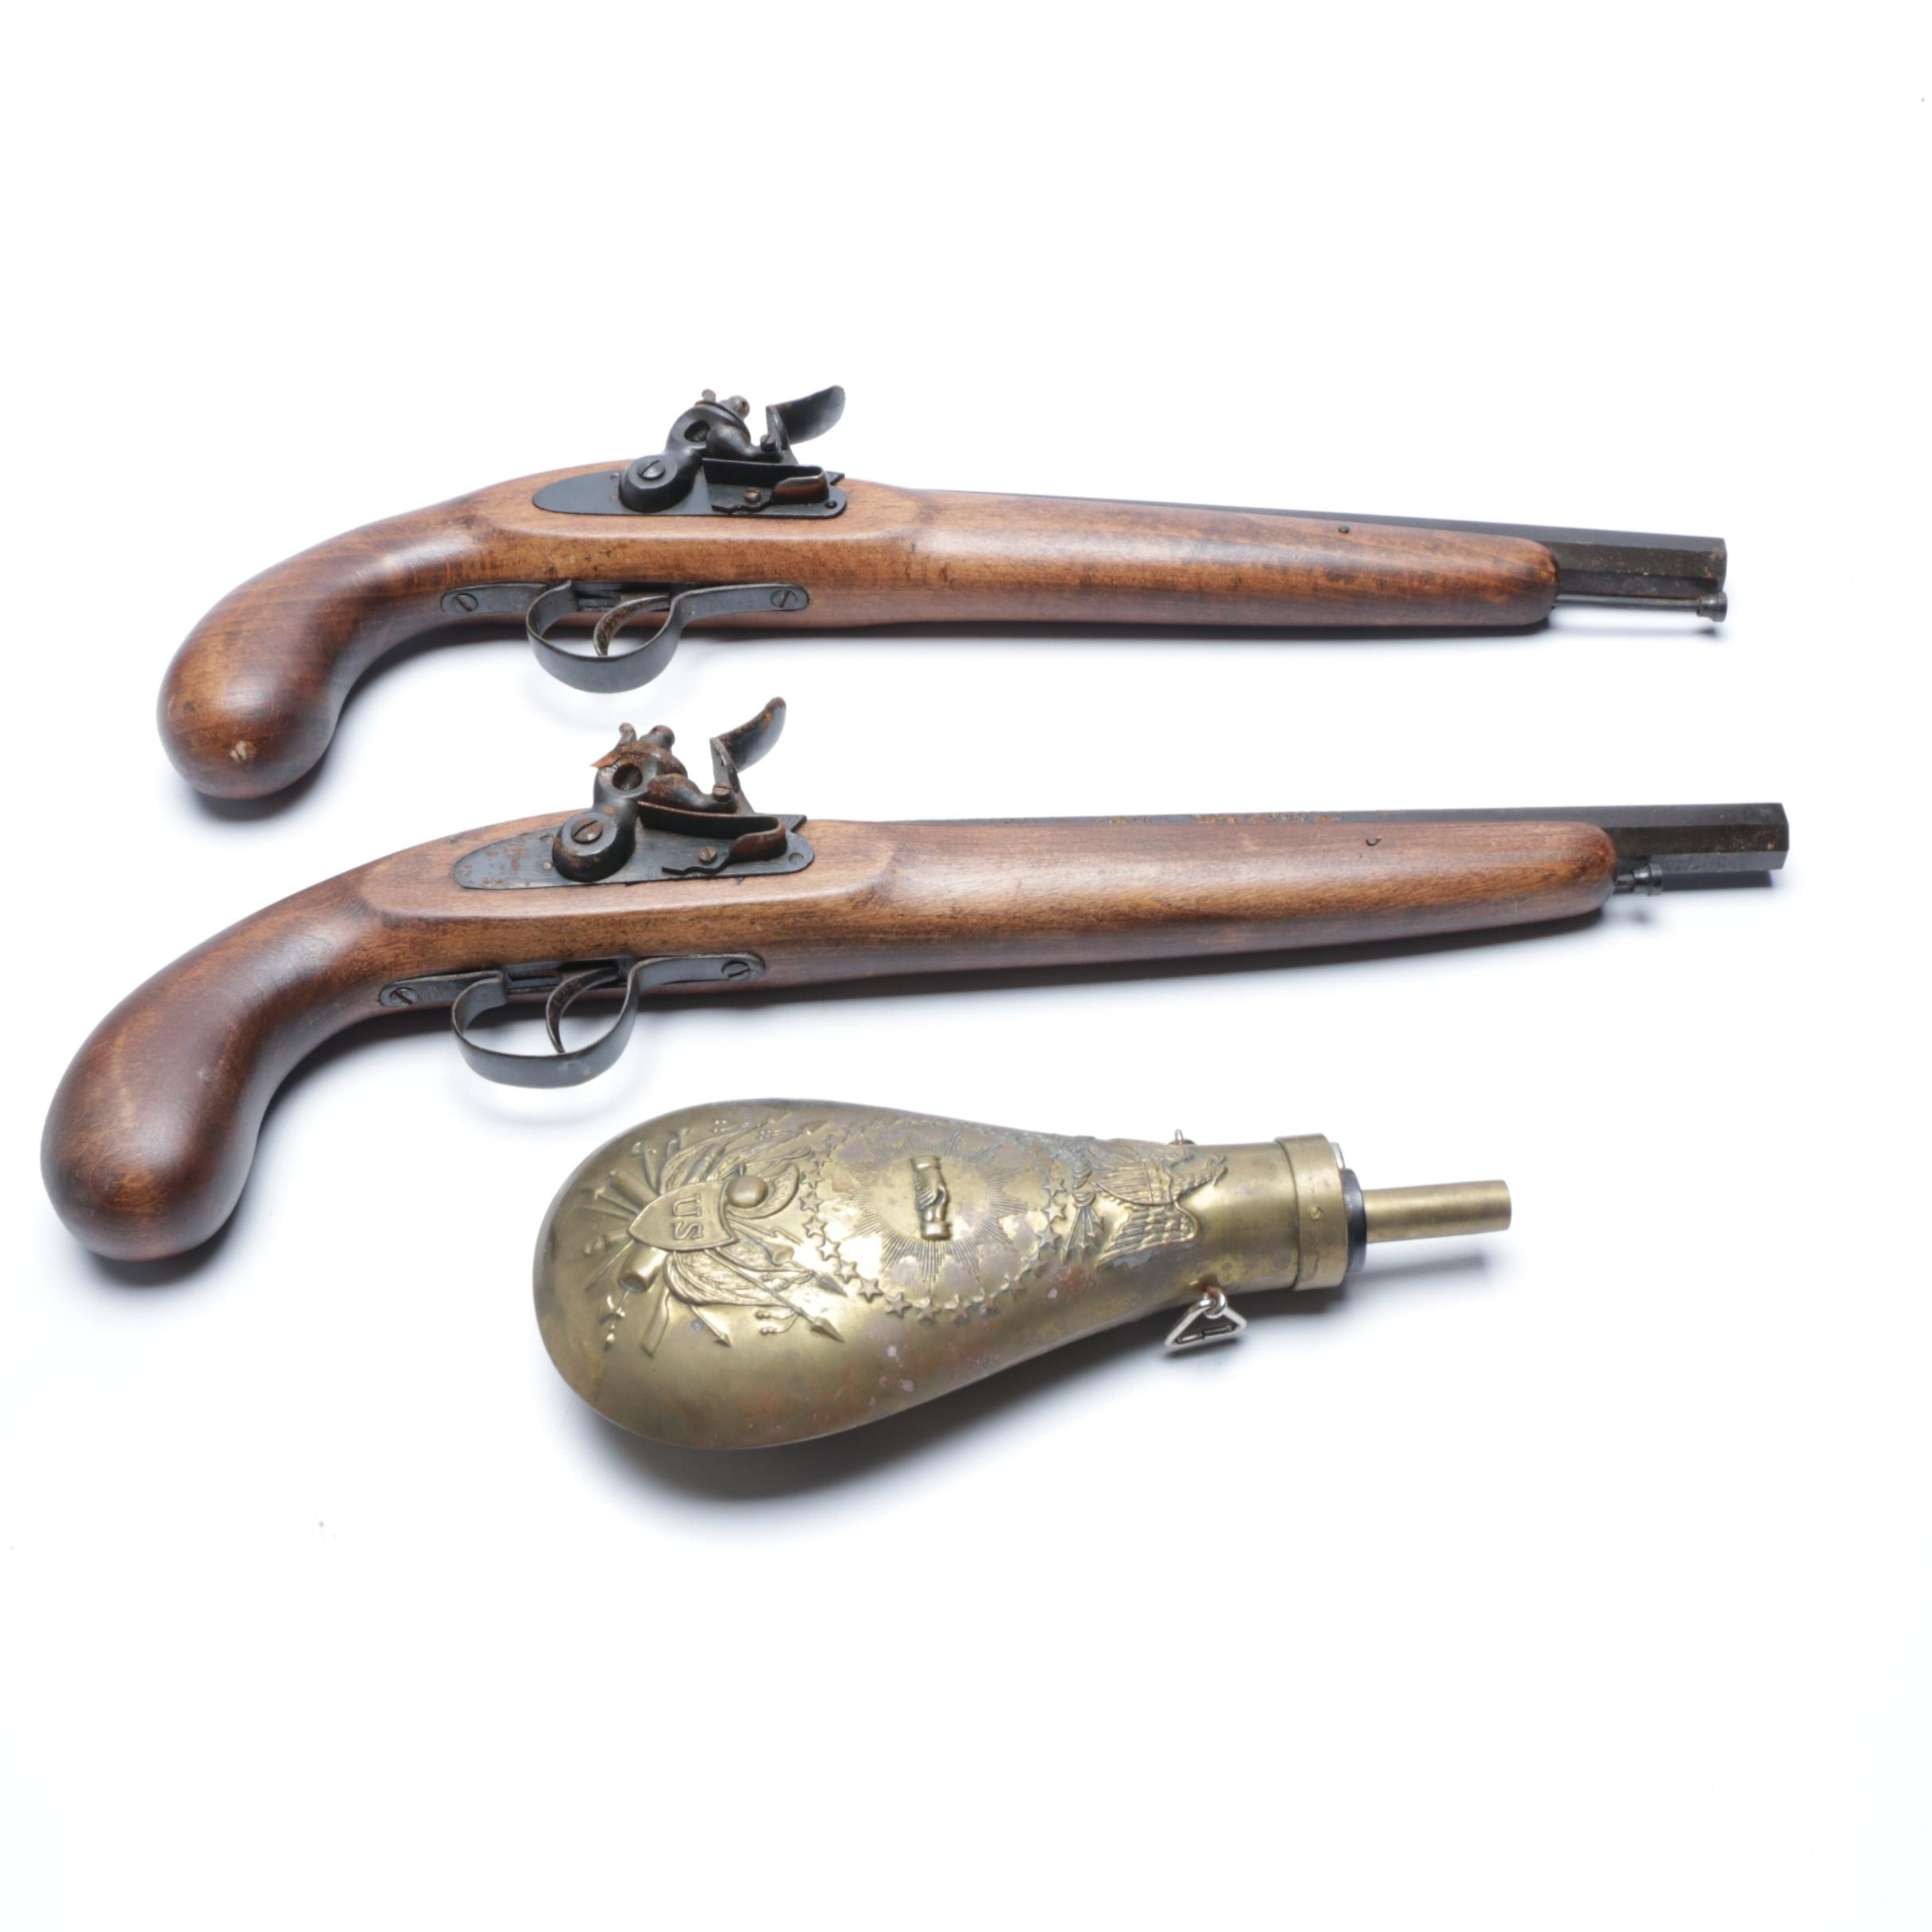 Pair of Reproduction Flintlock Pistols with Powder Flask